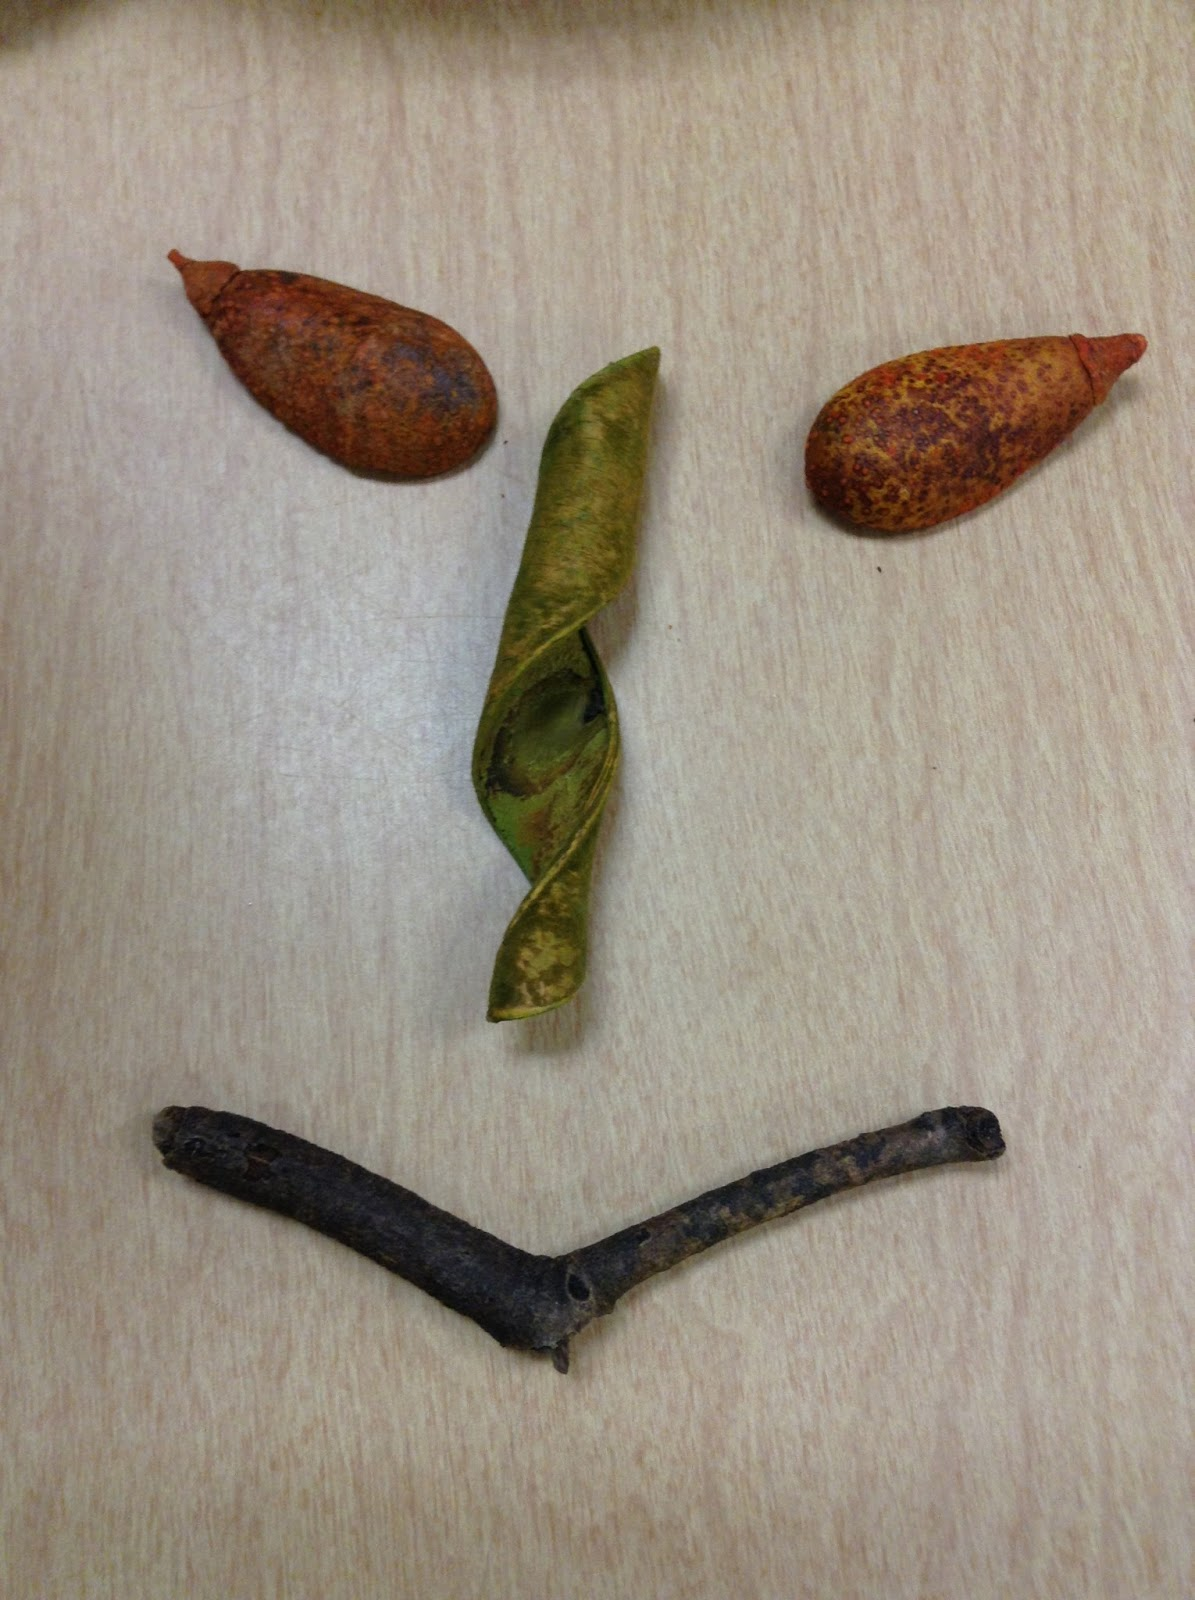 Face made using a stick and three seeds.